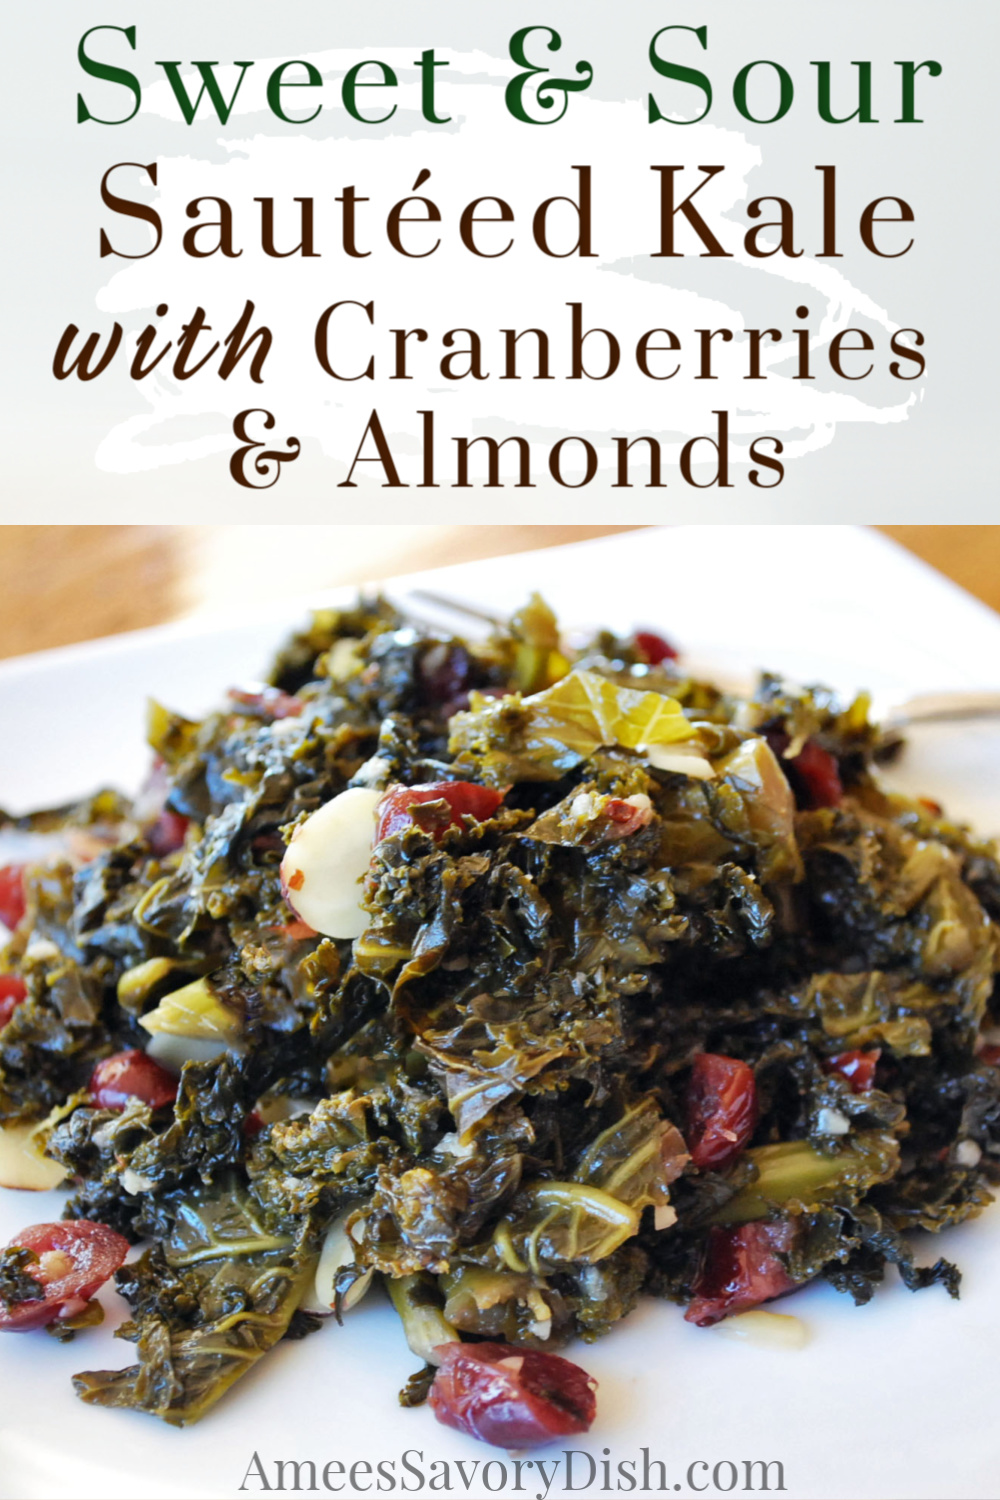 Sweet and sour kale greens area delicious, healthy, and easy kale side dish, packed with superfood nutrients. Fresh cranberries and crunchy almonds provide the perfect contrast in texture and flavor to this healthy side dish recipe! #sautéedkale #kalerecipe #easysidedish #healthysidedishes via @Ameecooks